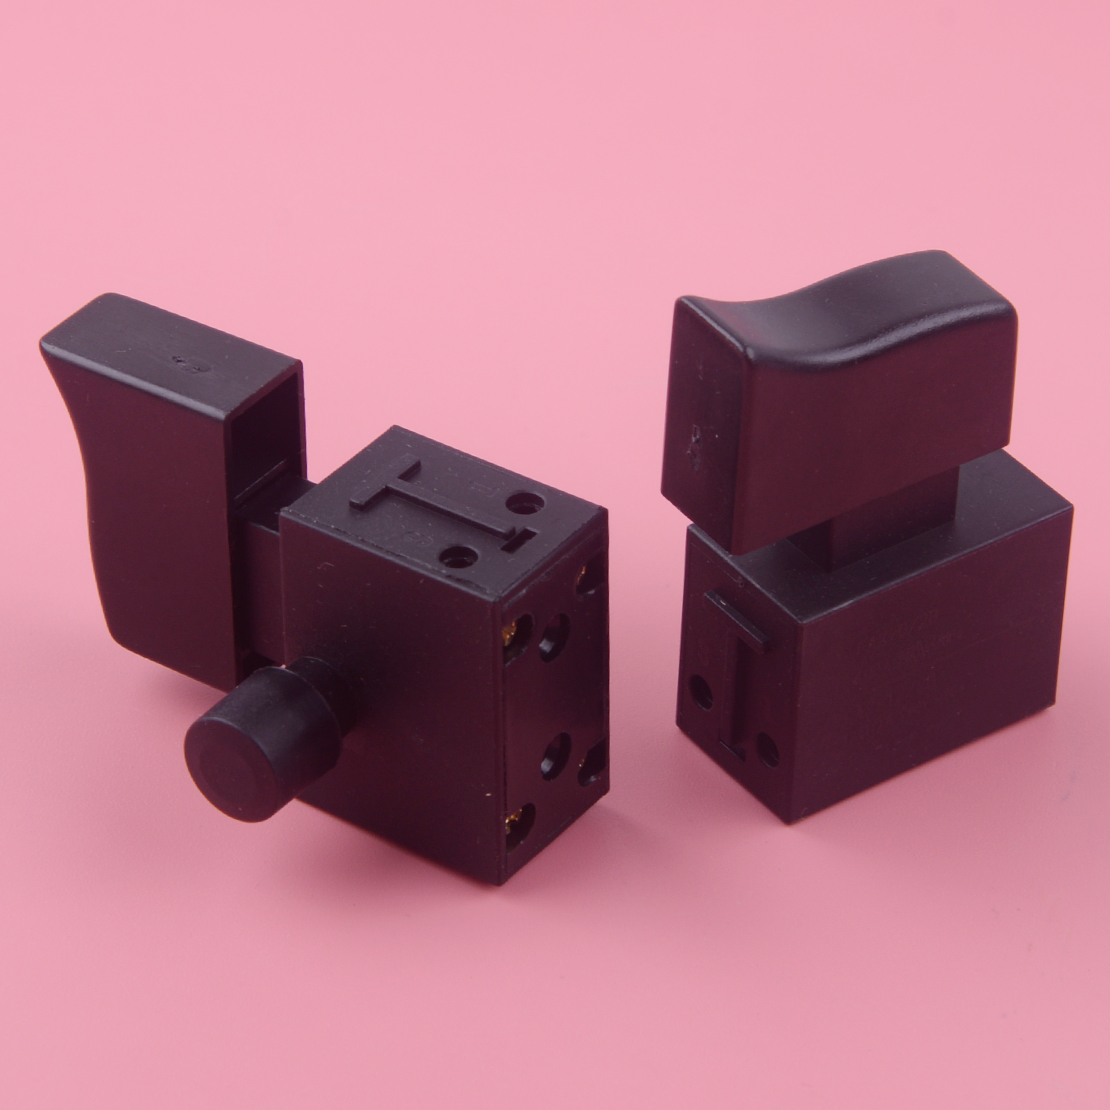 a 250v 5e4 6 Honest Letaosk 2pcs Latching 1no 1no Dpst Self Locking Power Tool Trigger Switch Button Electric 6